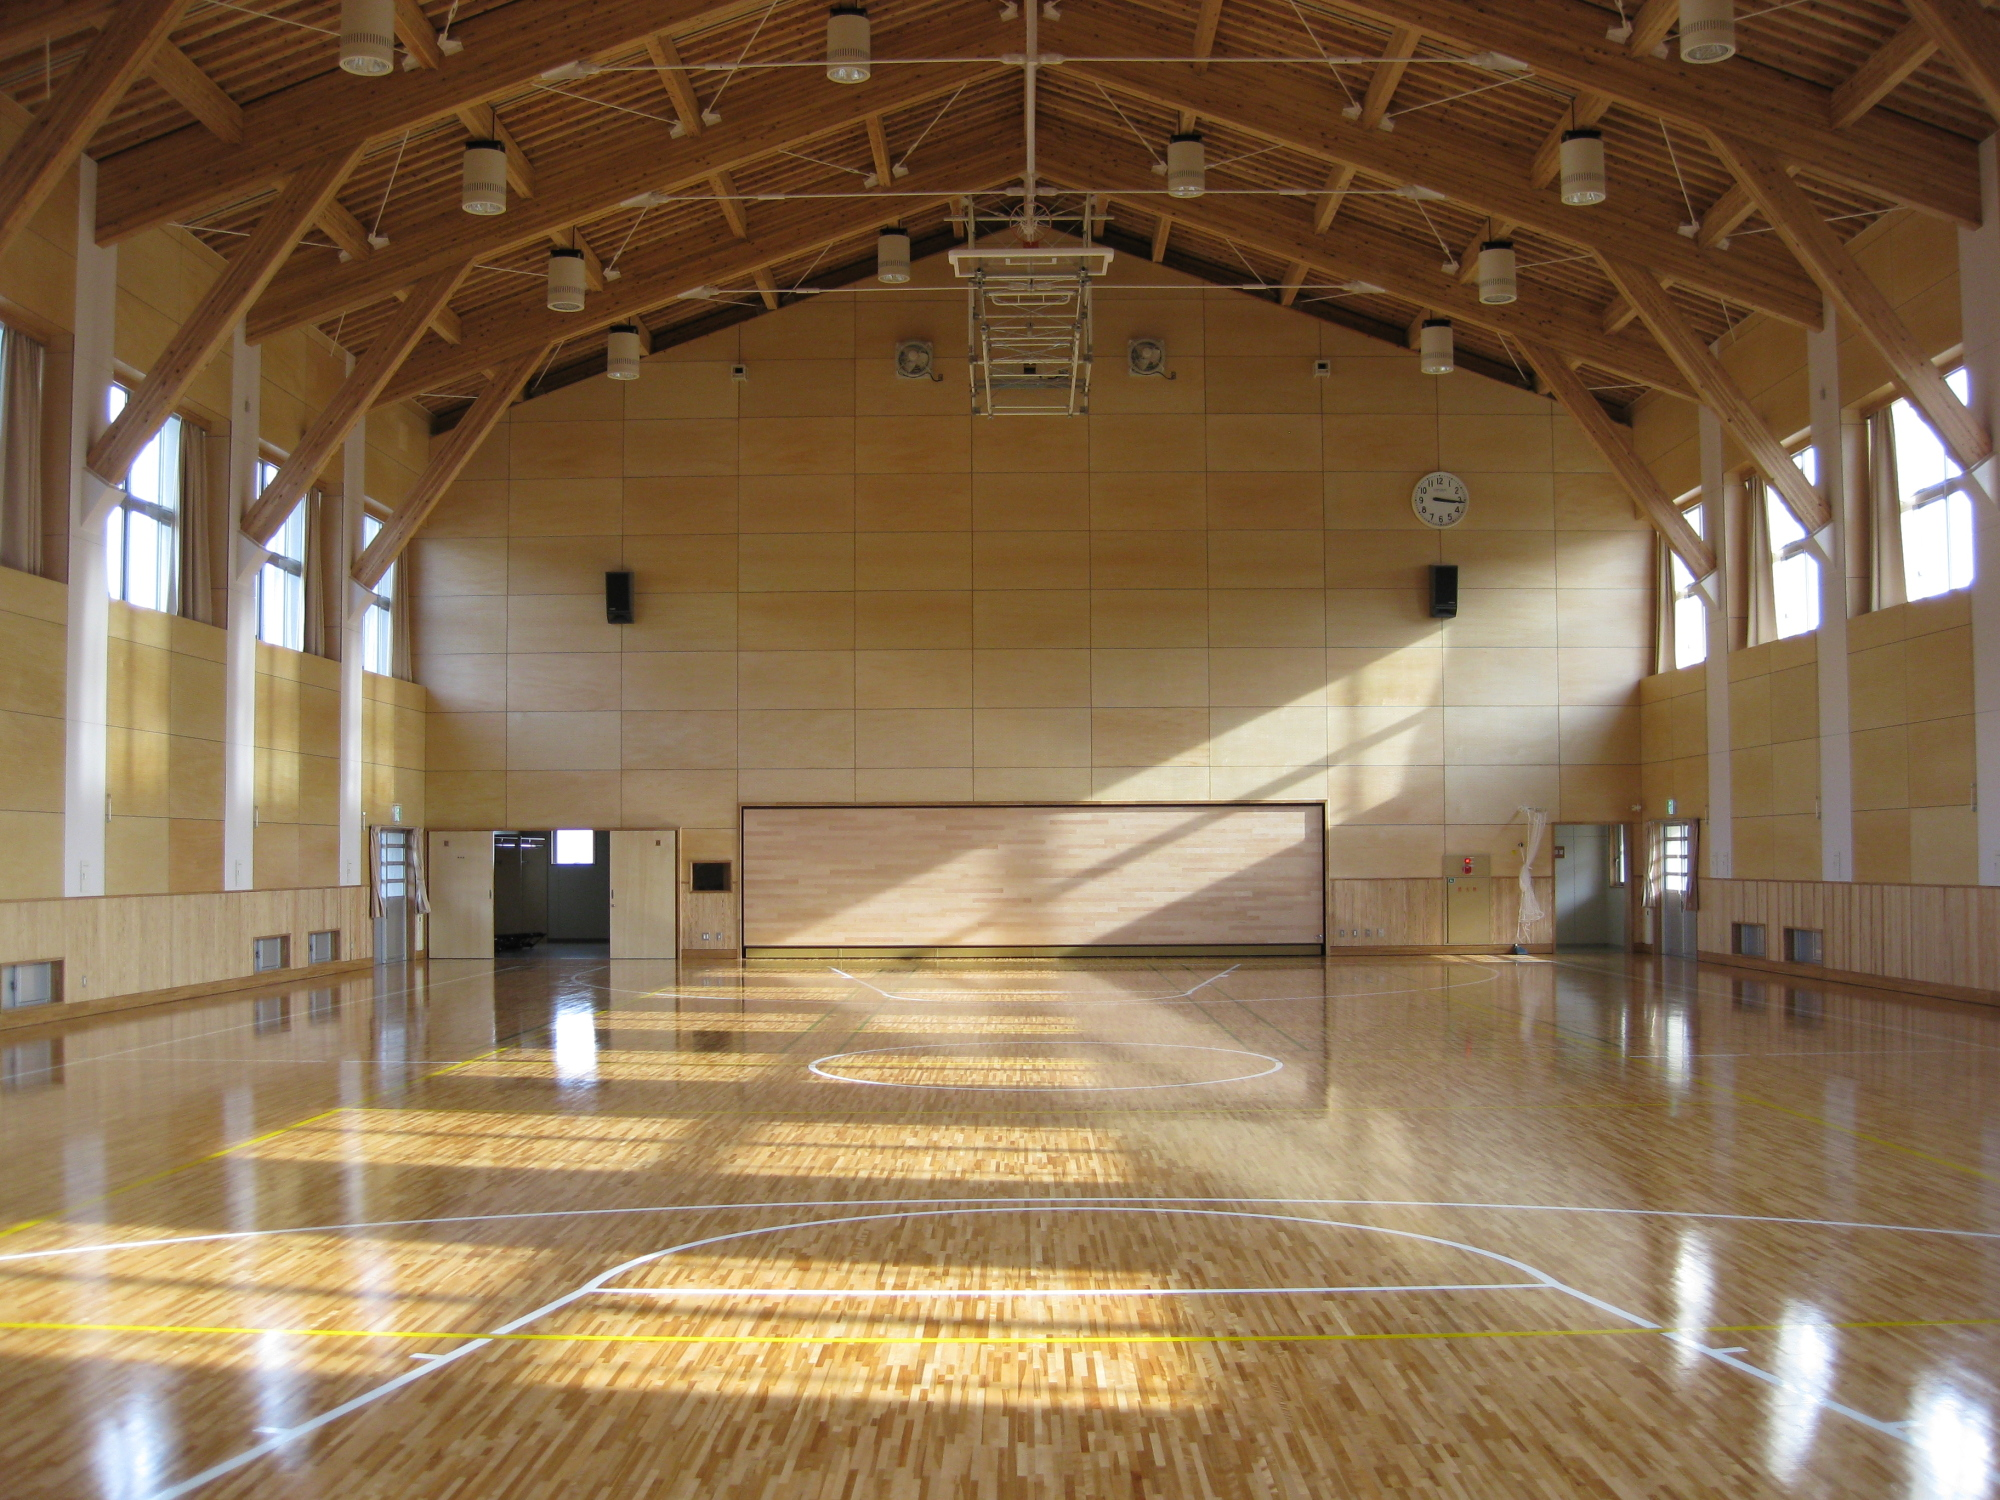 Dimensions of basketball court all scores info